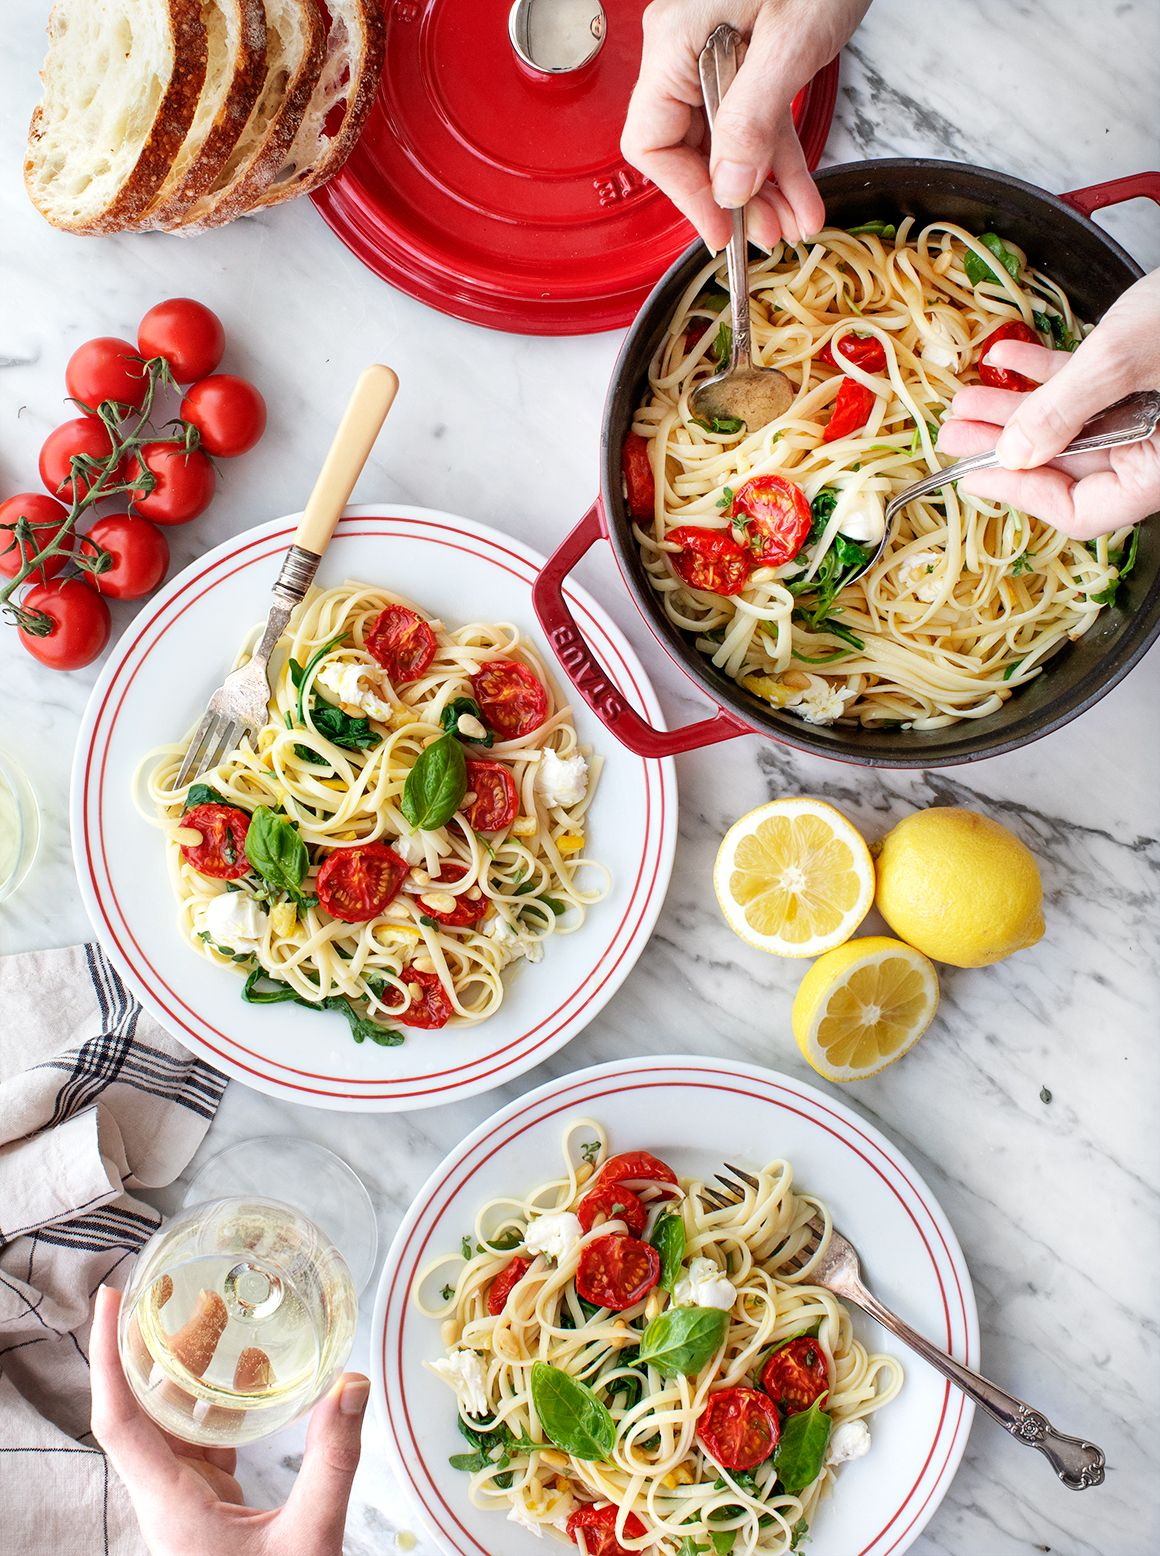 Tomato Lemon Linguine This lemon linguine pasta is a simple, yet elevated, healthy dinner recipe! Roasted tomatoes, basil, mozzarella & lemon fill it with rich, savory & fresh flavors. | Love and Lemons